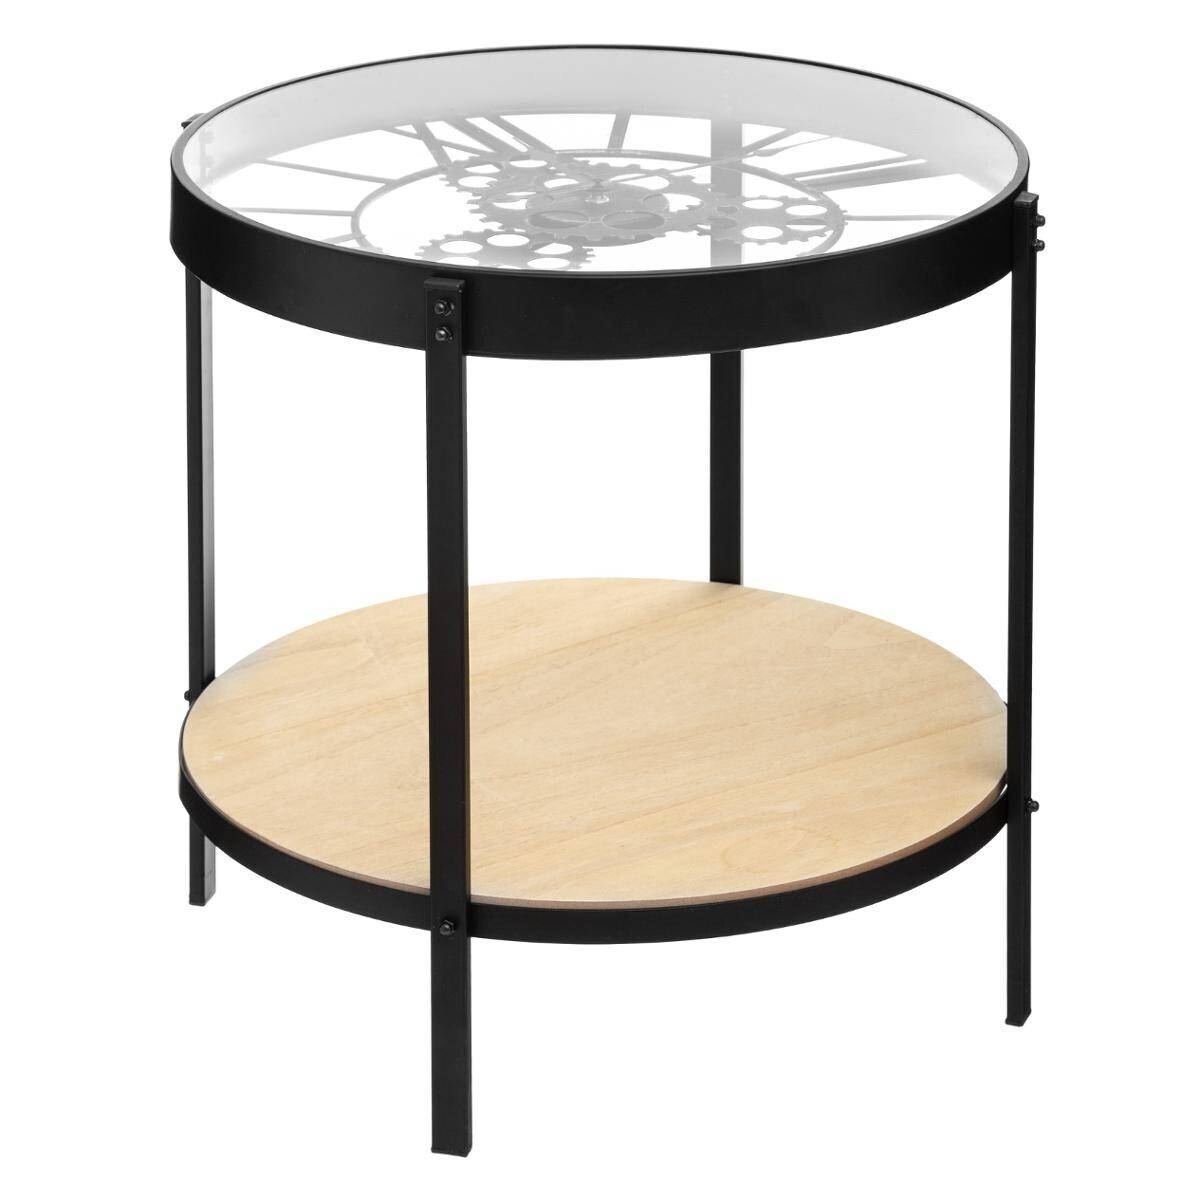 Atmosphera Table à café horloge D51 cm